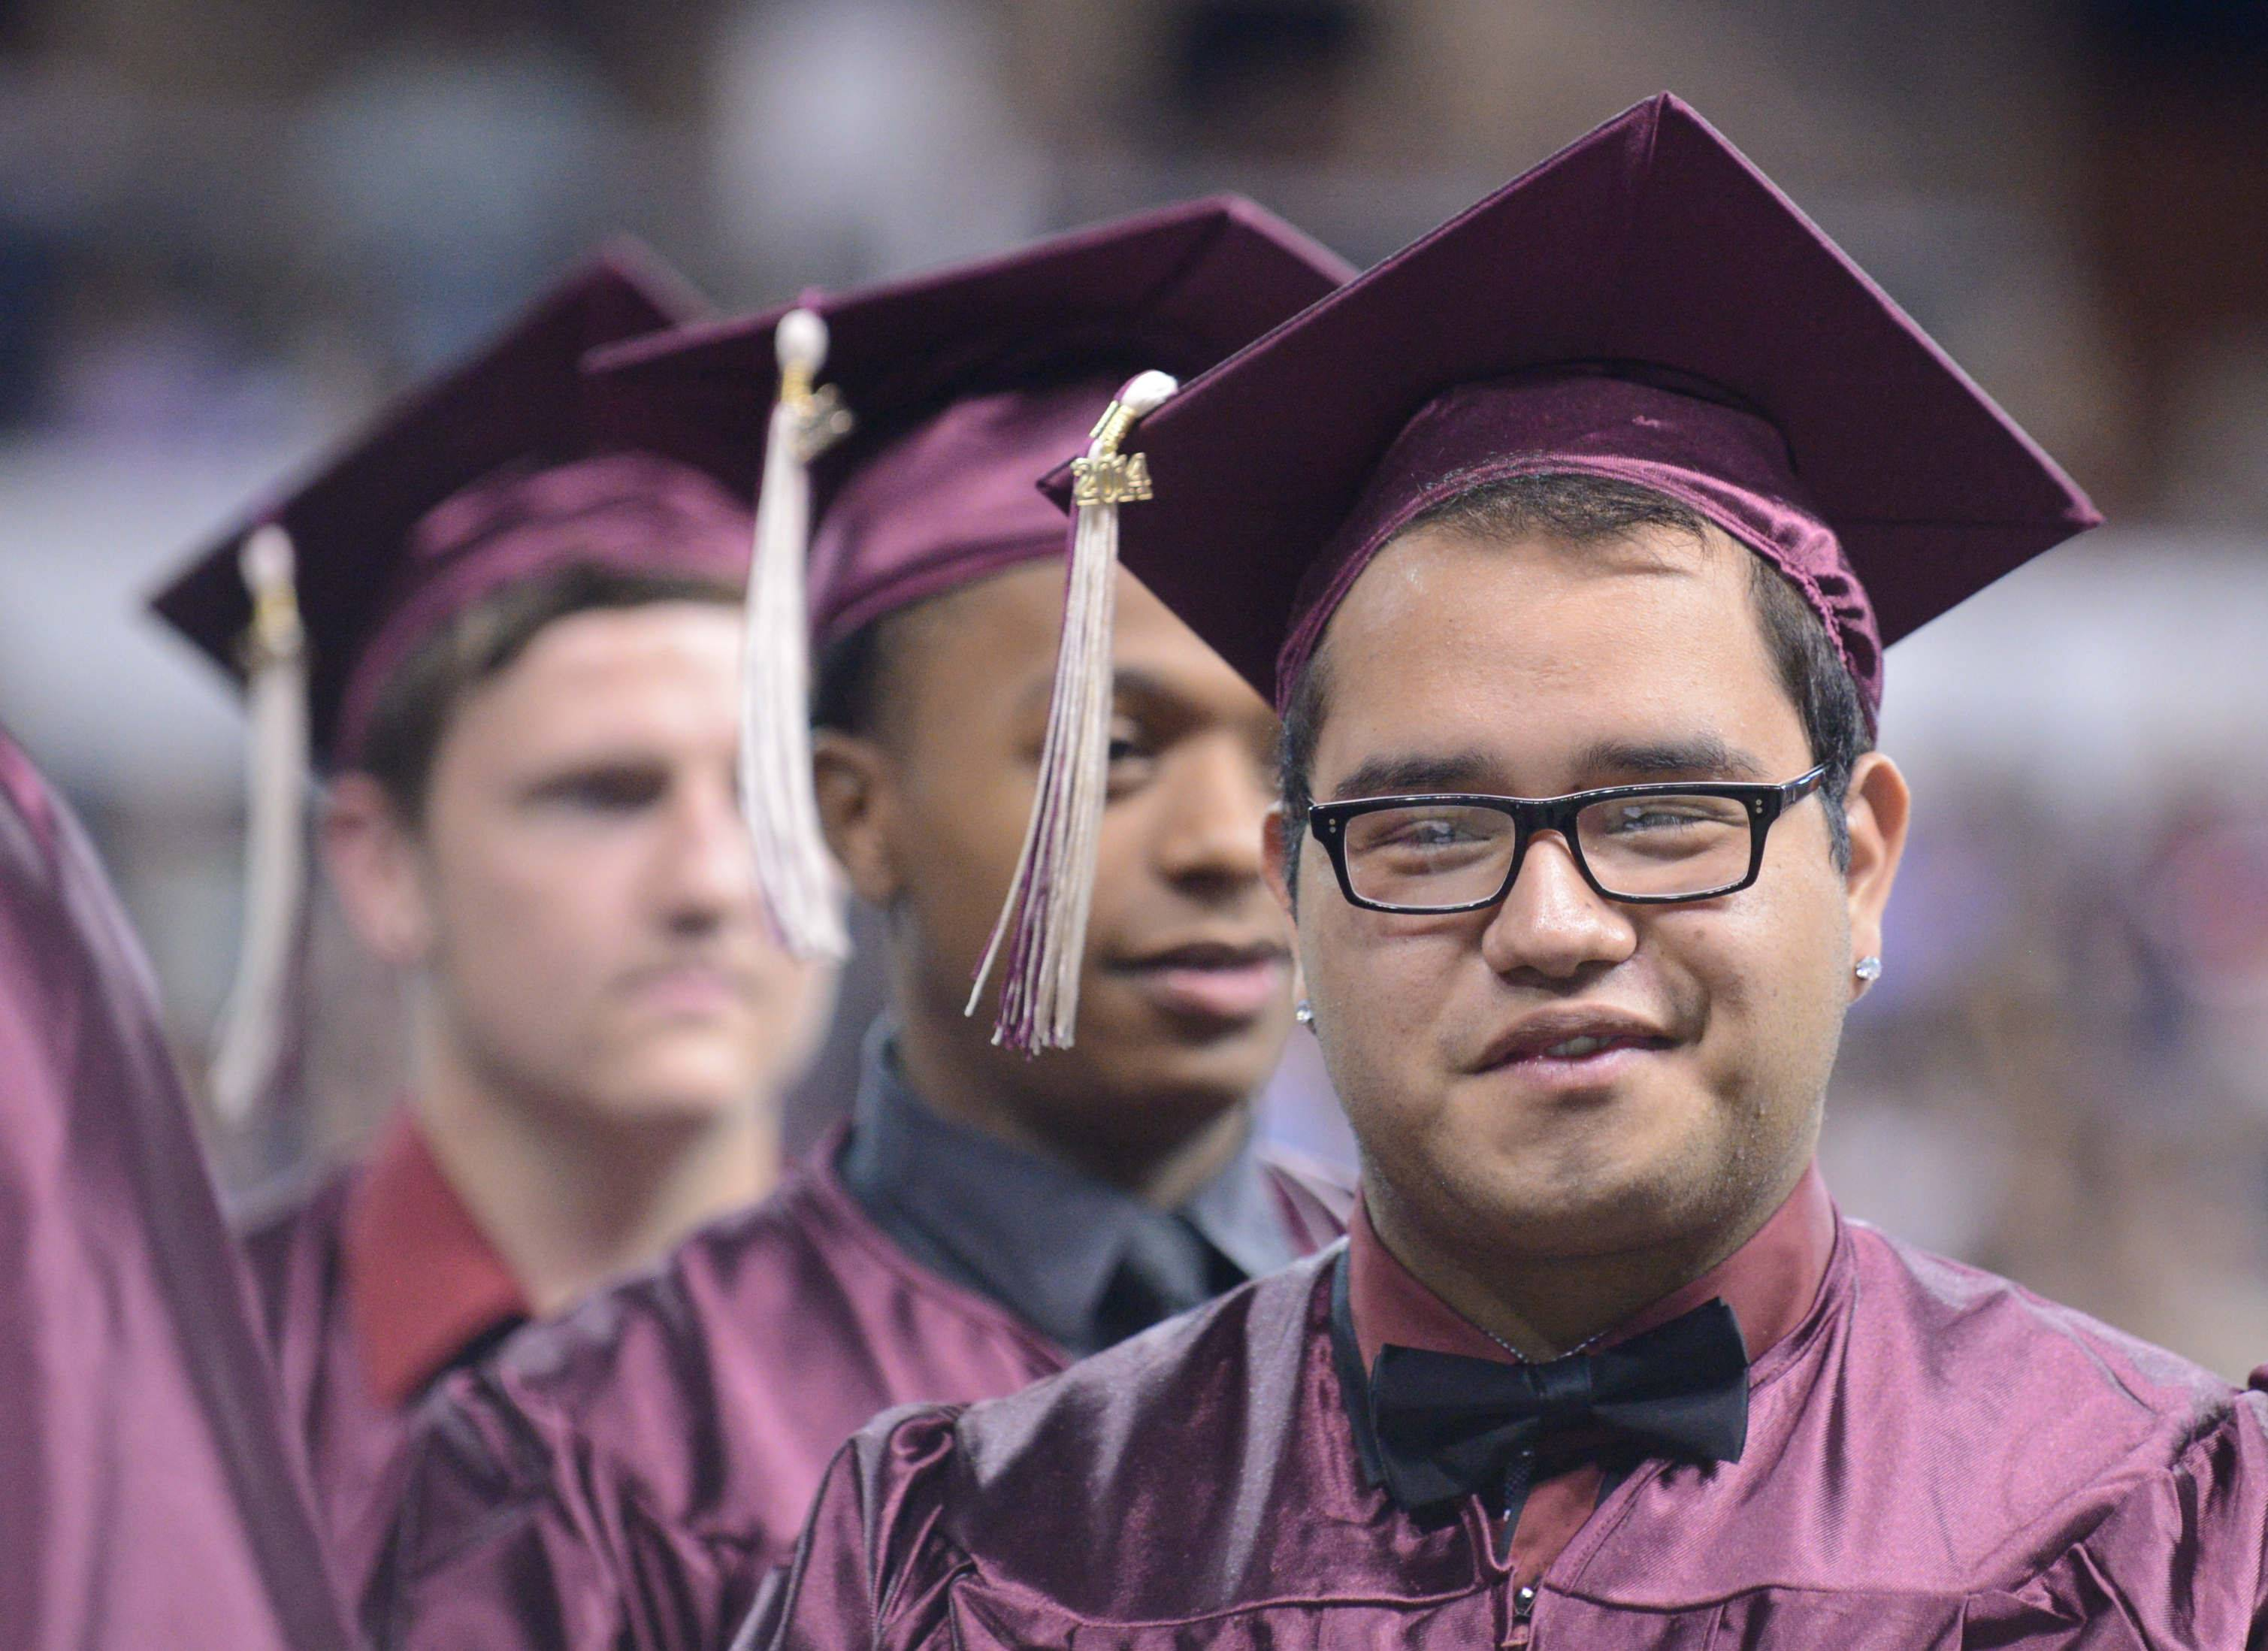 Images from the Elgin High School graduation Saturday, May 23rd at the Sears Centre in Hoffman Estates.